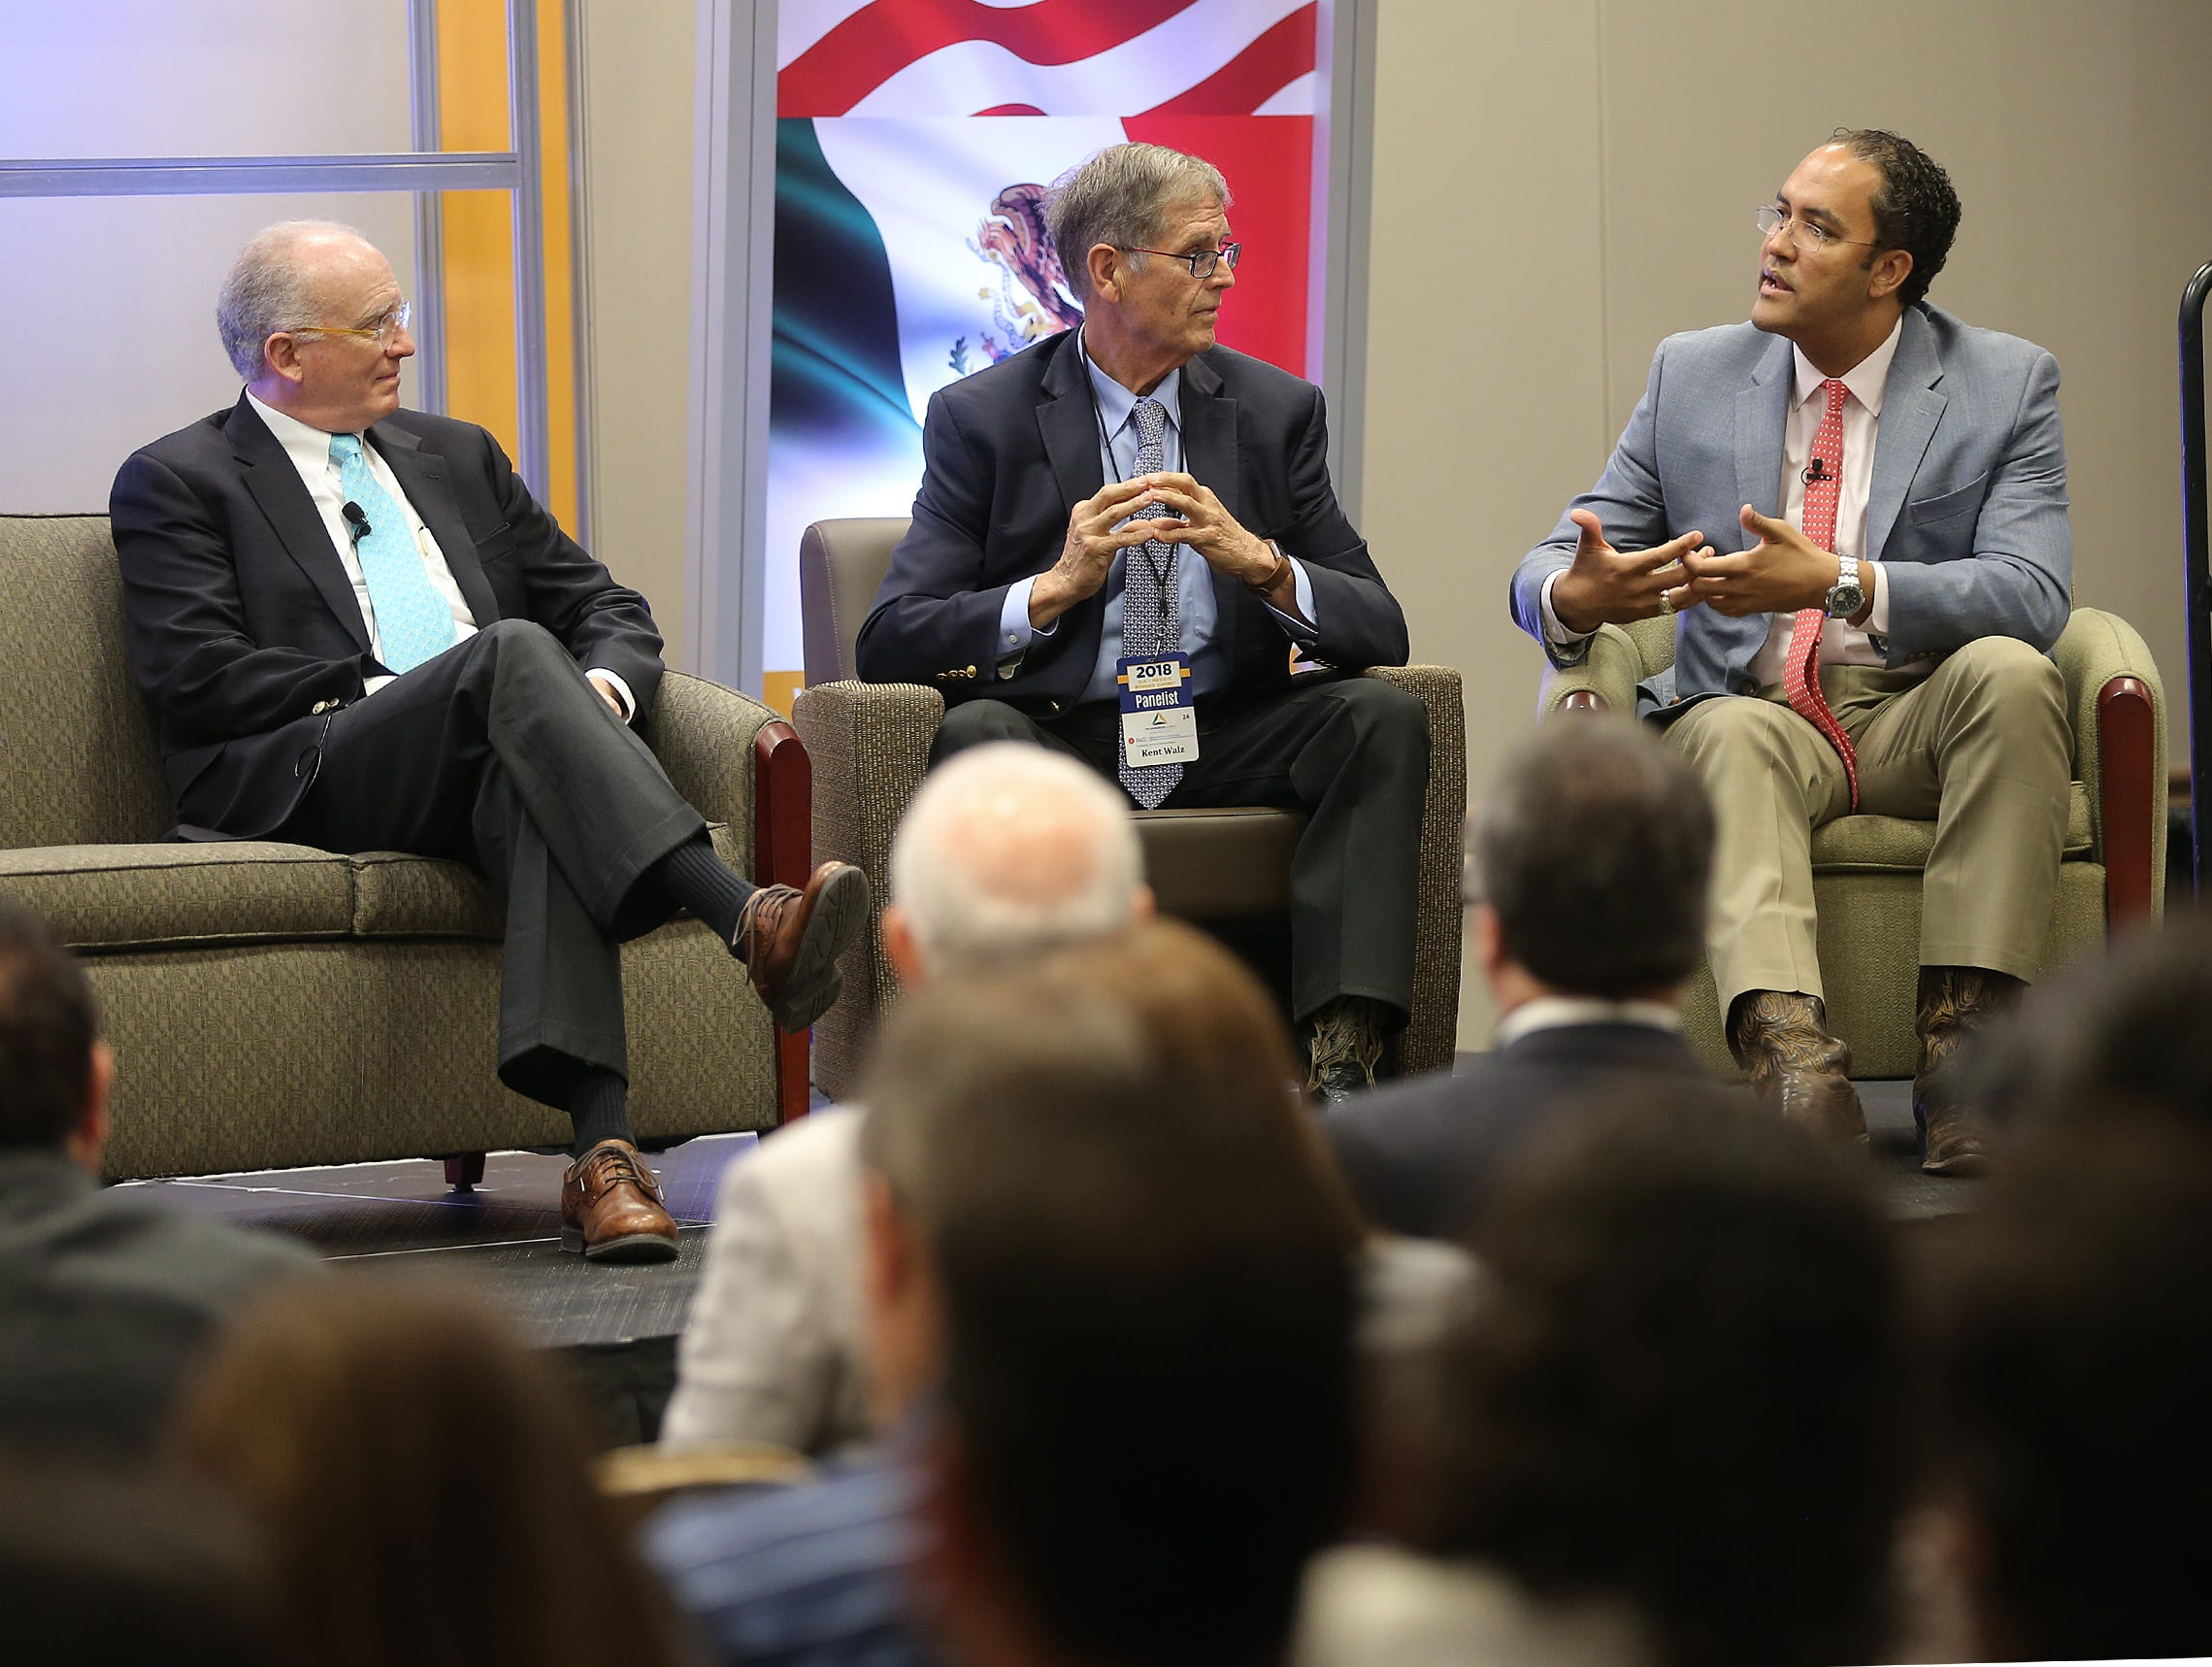 U.S. Rep. Will Hurd, right, talks about NAFTA with fellow panelists Kent Walz, center, Senior Editor of the Albuquerque Journal and Matthew Rooney, Director of Growth for the George W. Bush Institute, during the U.S.-Mexico Border Summit Wednesday in El Paso.